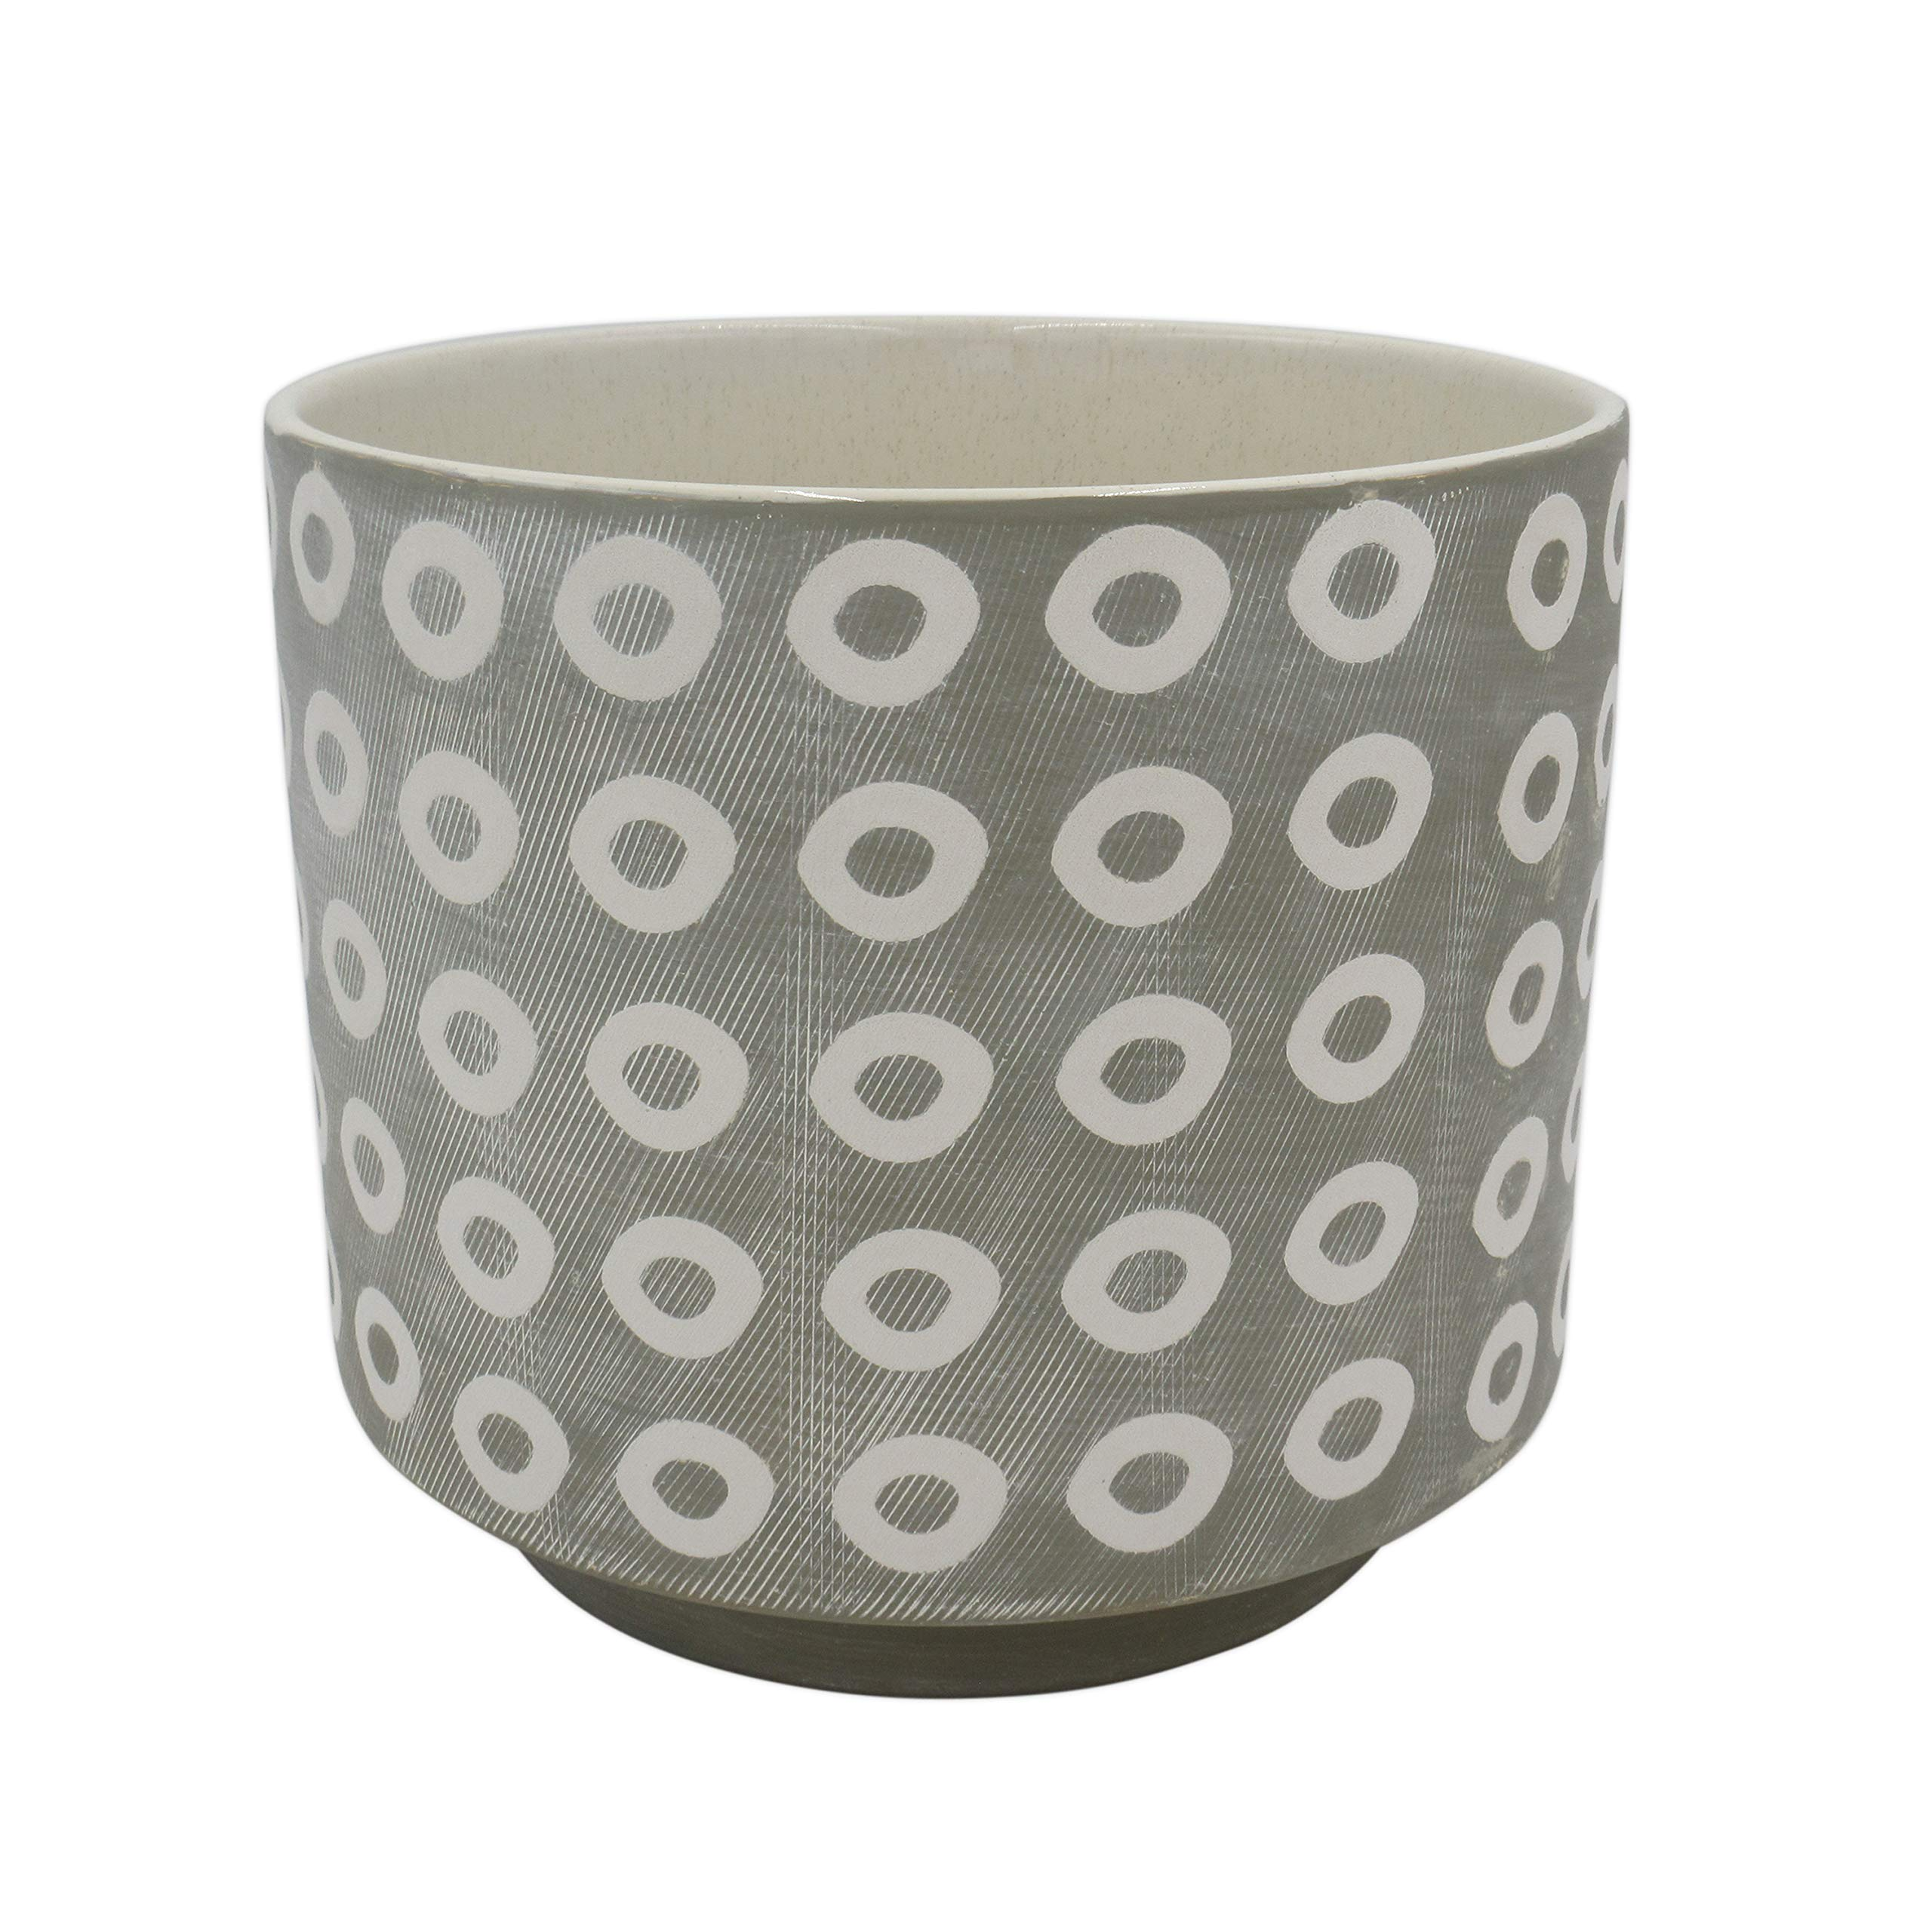 "Amazon Brand – Rivet Rustic Circle-Patterned Stoneware Planter, 8.85""H, White and Gray"